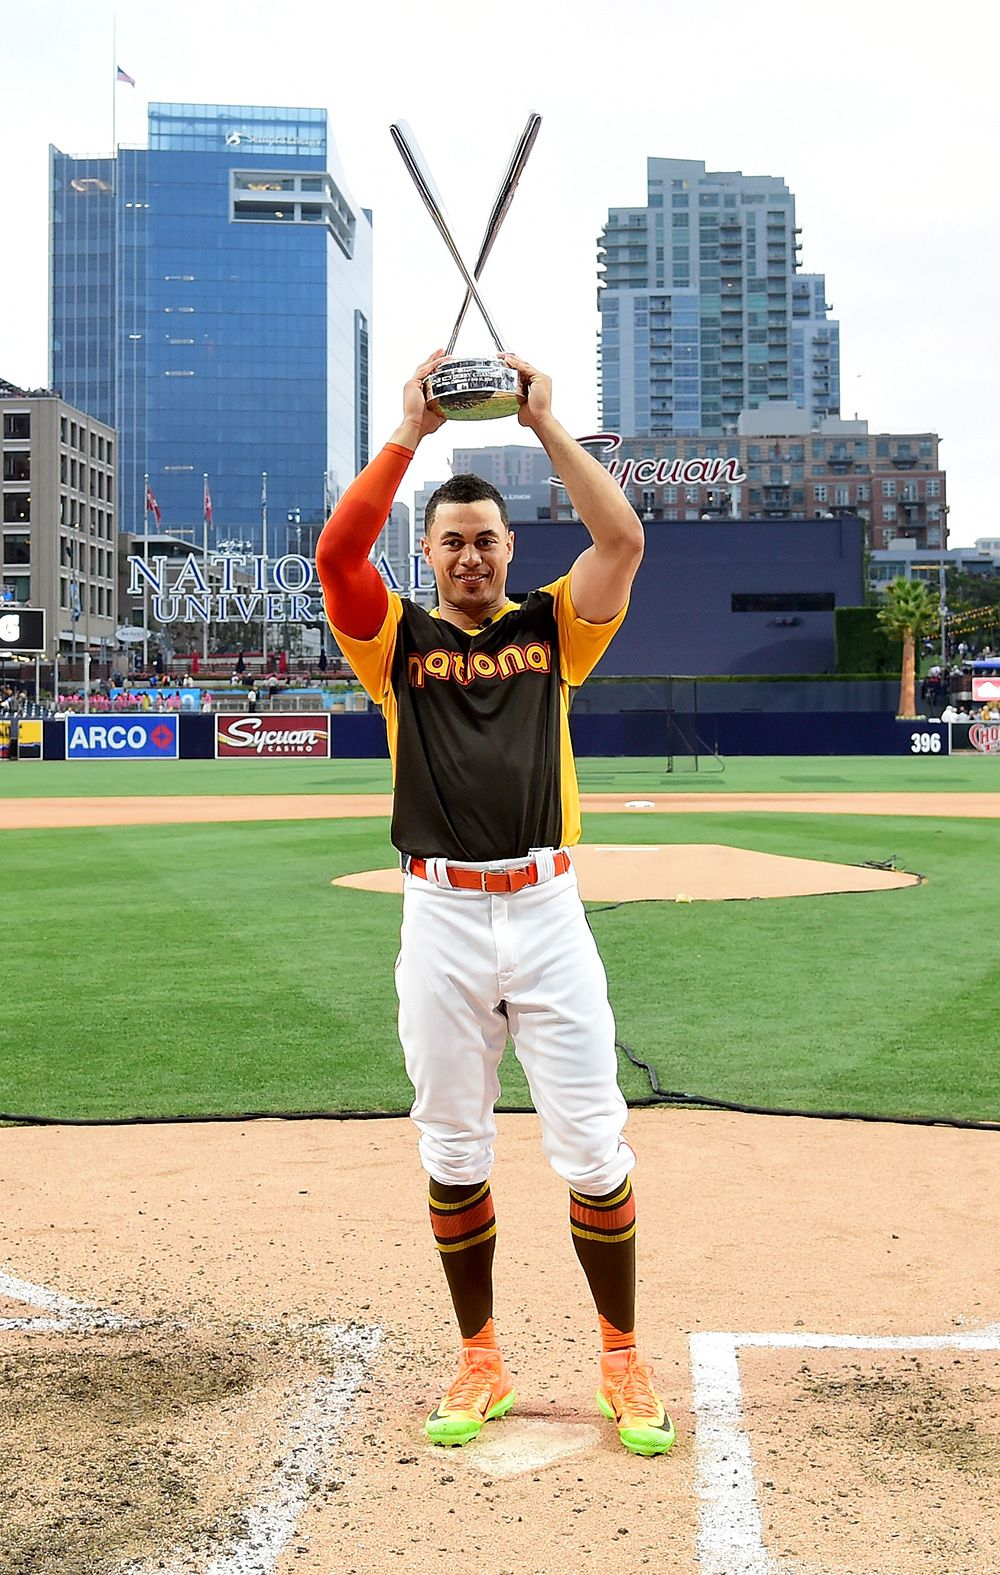 Home Run Derby 2016 Incredible Photos From Mlb S Annual Slugfest Giancarlo Stanton Marlins Baseball Best Baseball Player